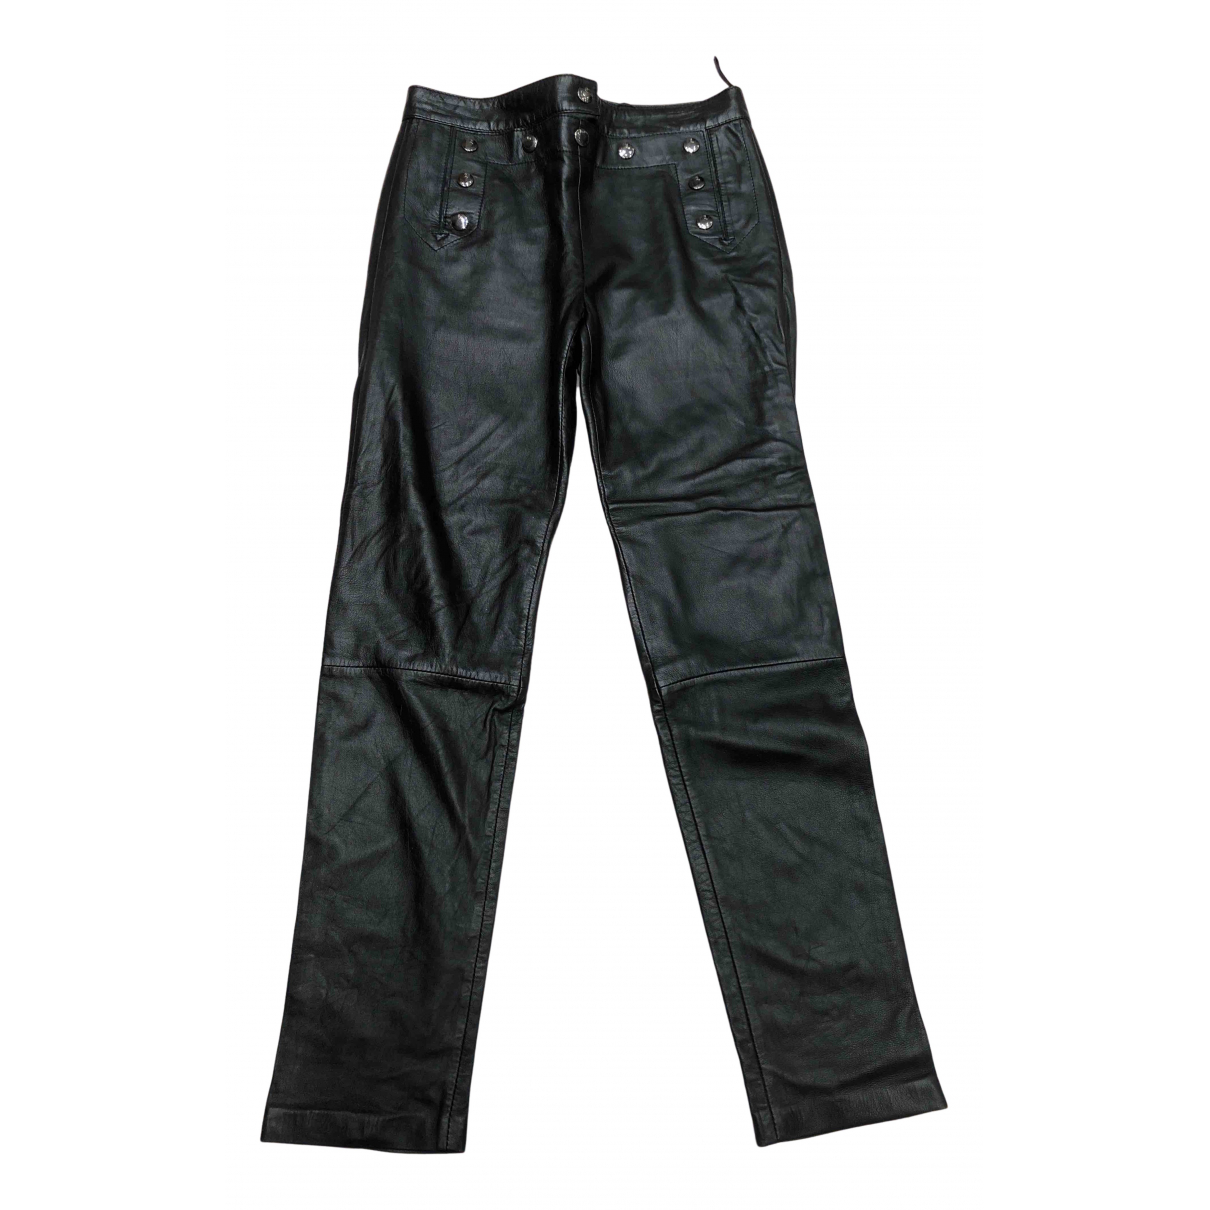 Mcq N Black Leather Trousers for Women M International